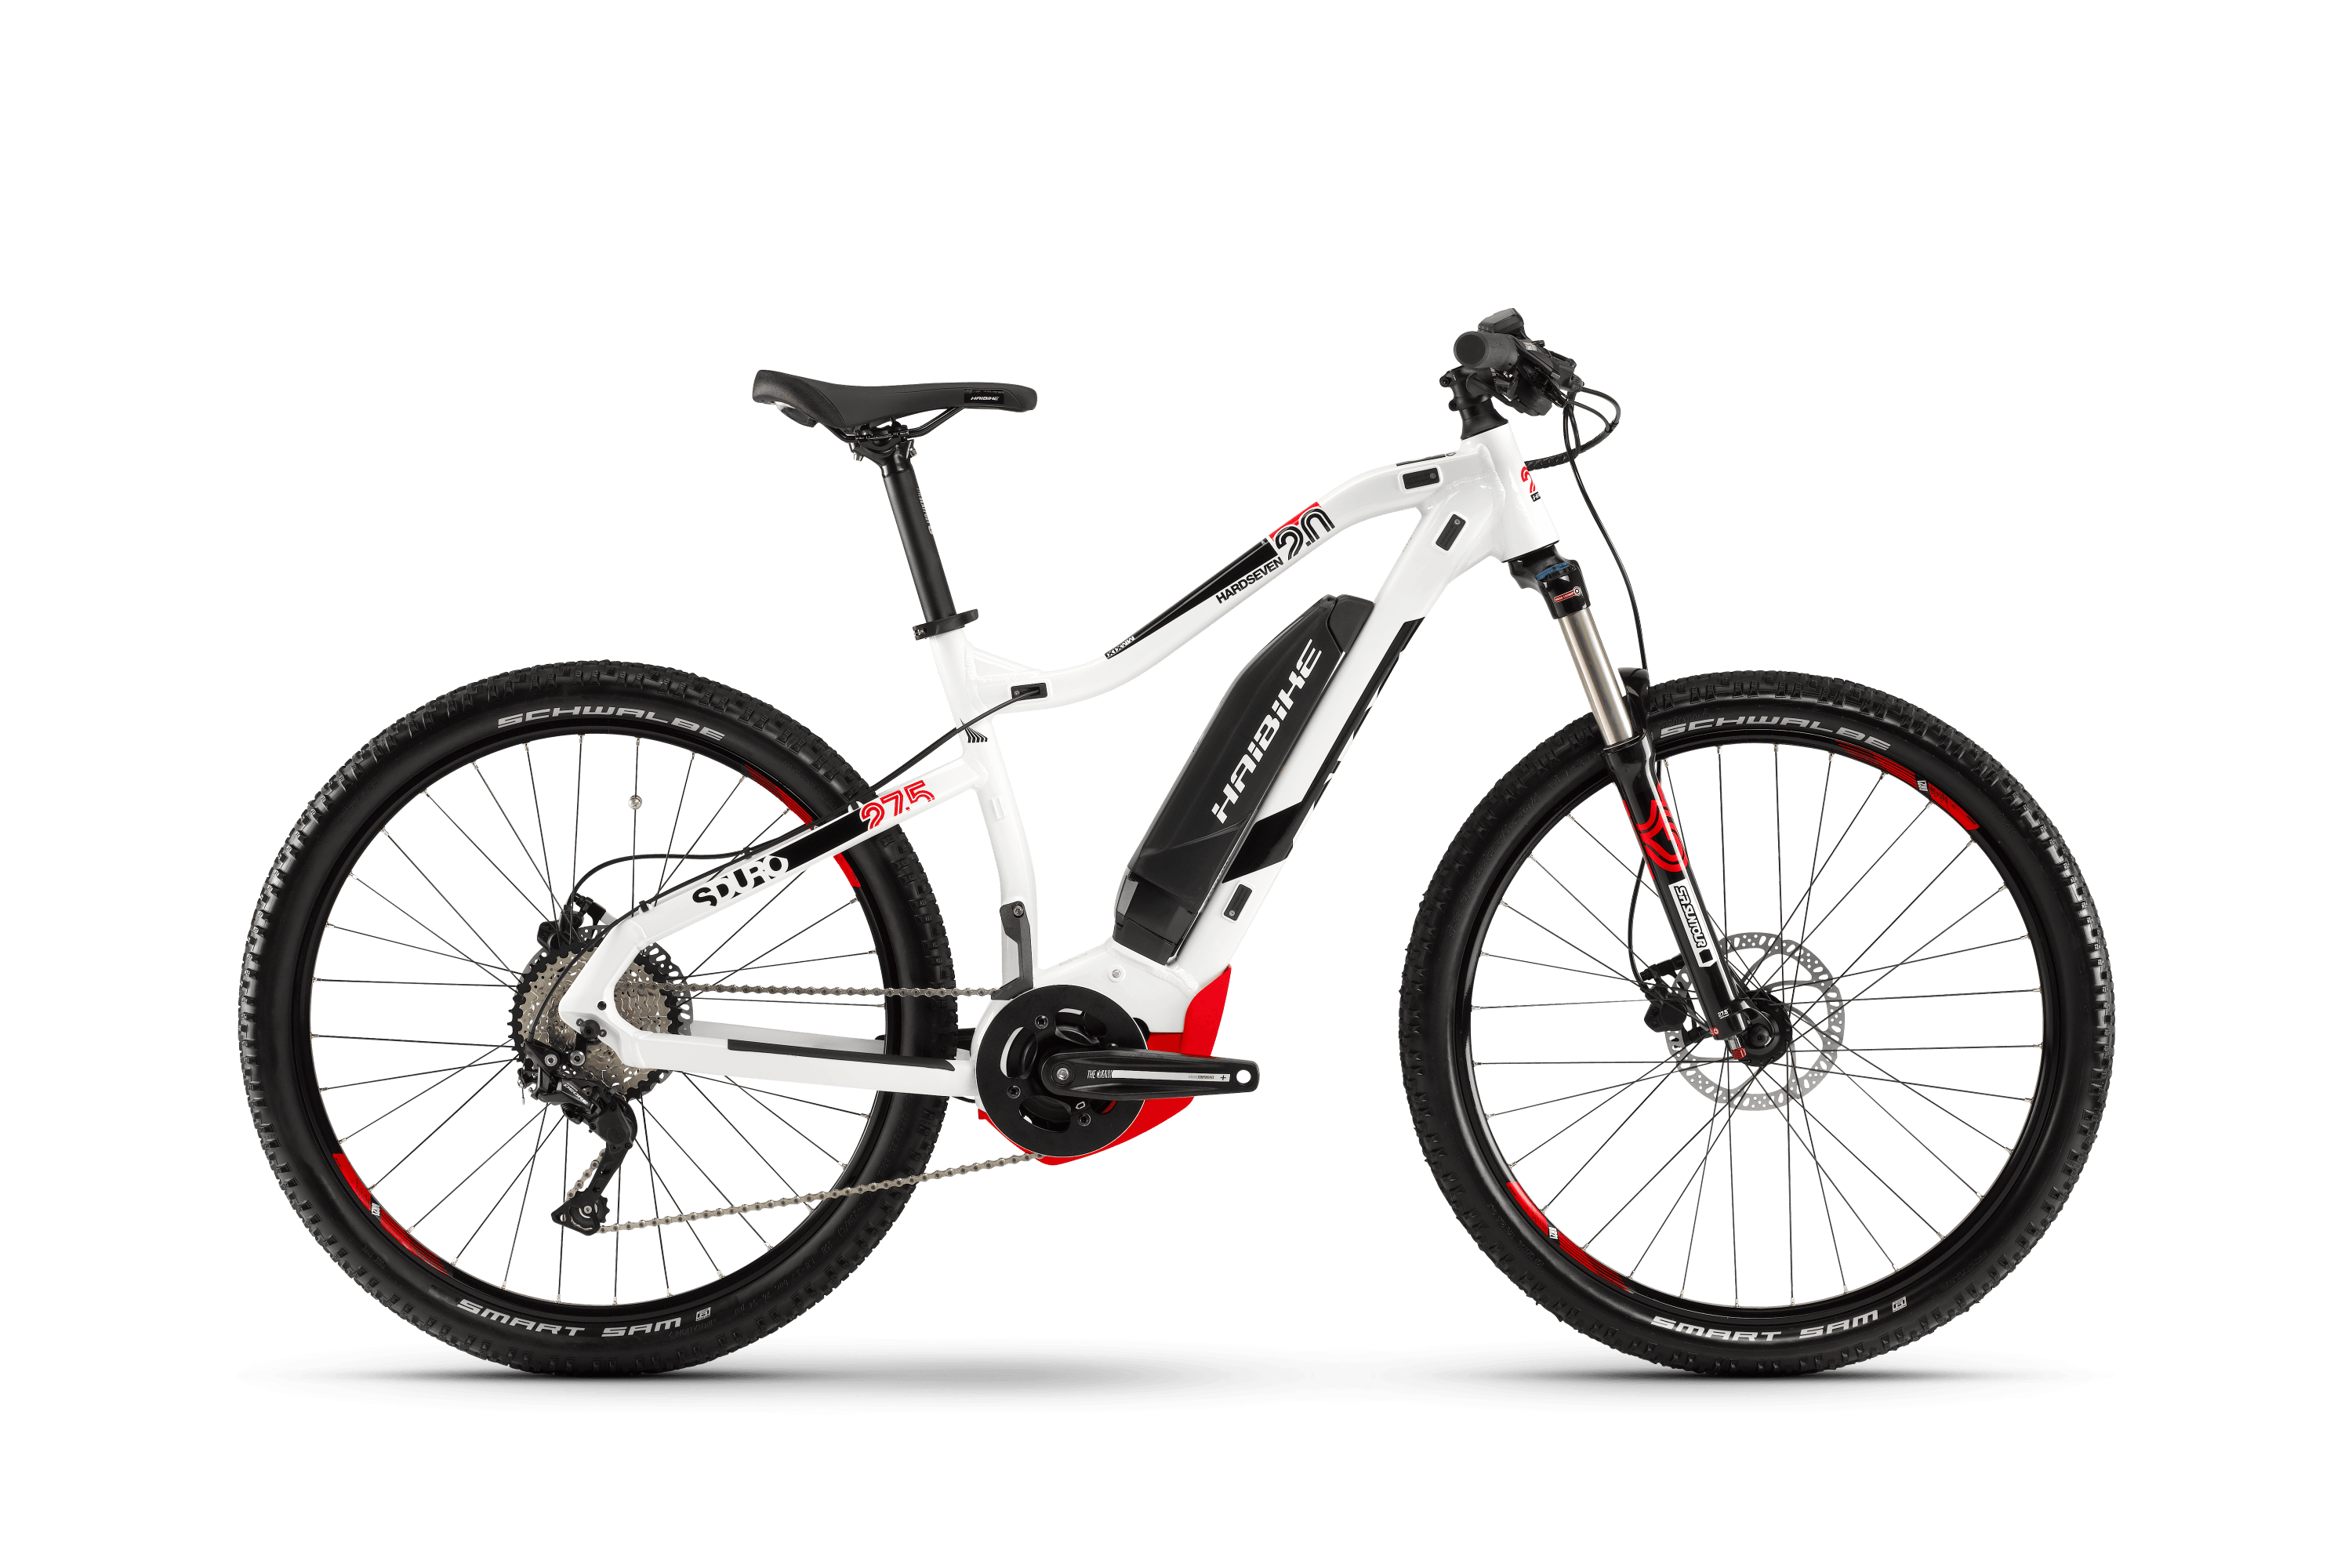 https://w8w5m3f8.stackpathcdn.com/11982-thickbox_extralarge/vtt-electrique-haibike-sduro-hardseven-2-0.jpg